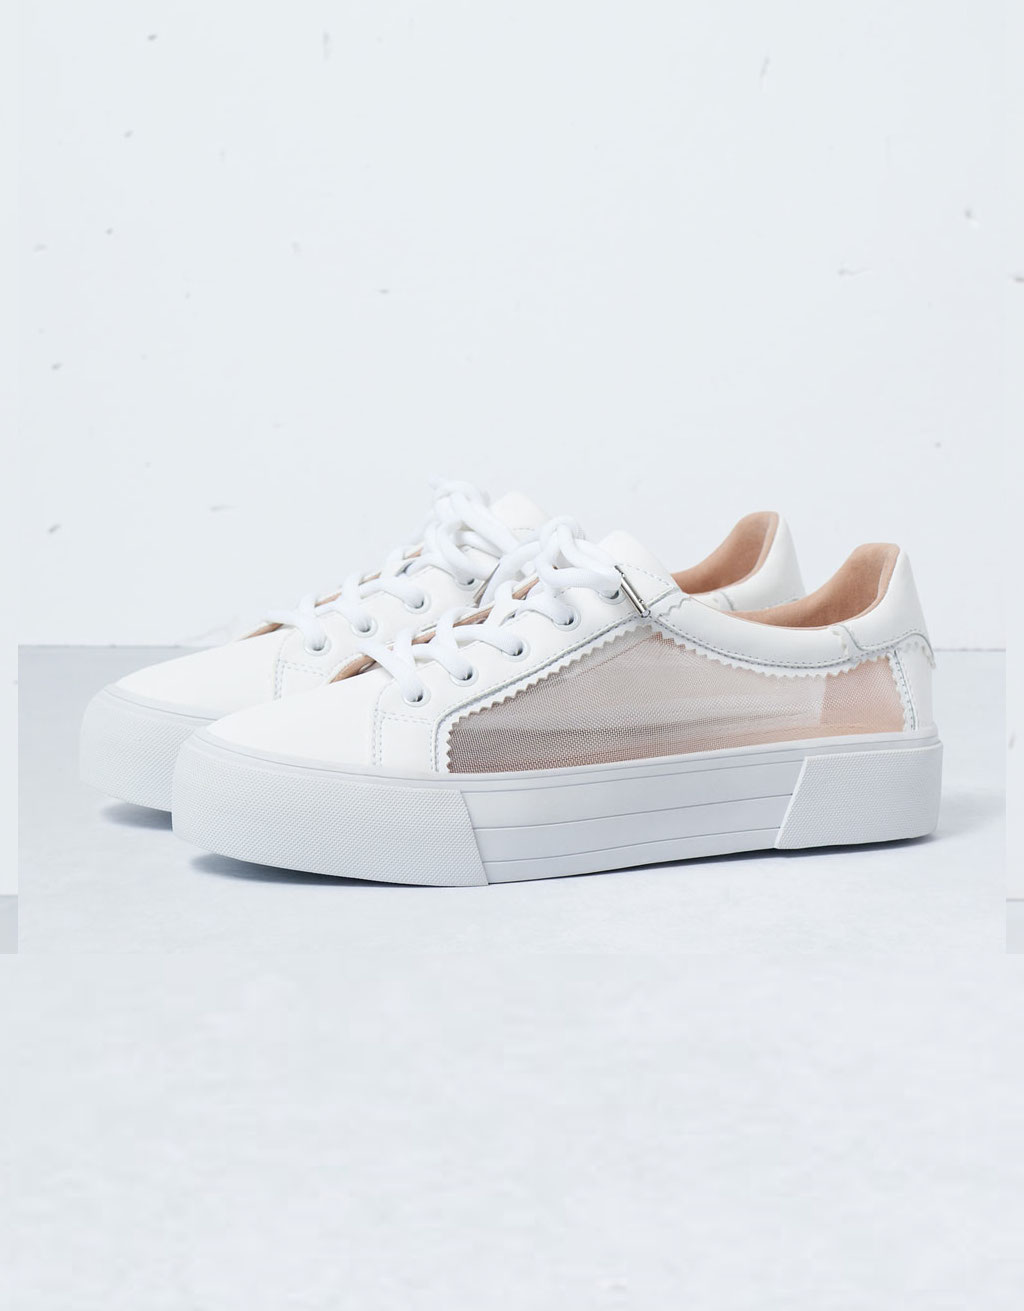 selectionsport-0615_13